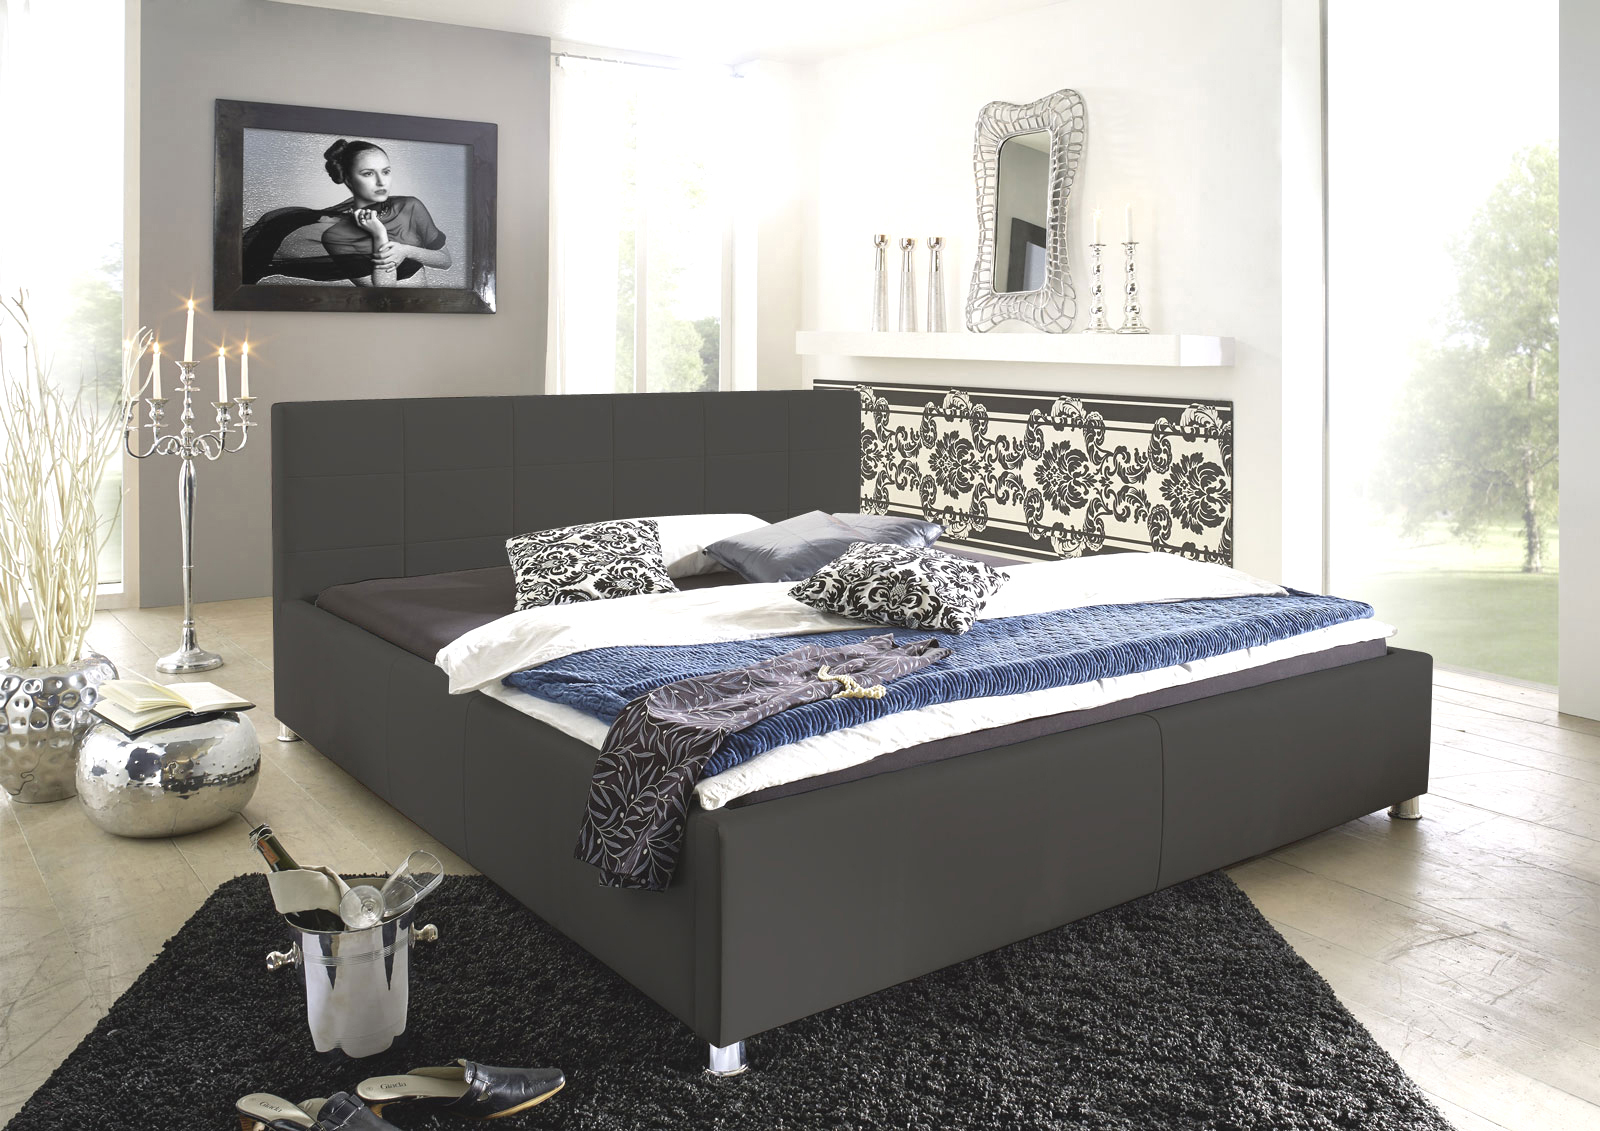 sam polsterbett 200 x 200 cm grau doppelbett kira. Black Bedroom Furniture Sets. Home Design Ideas